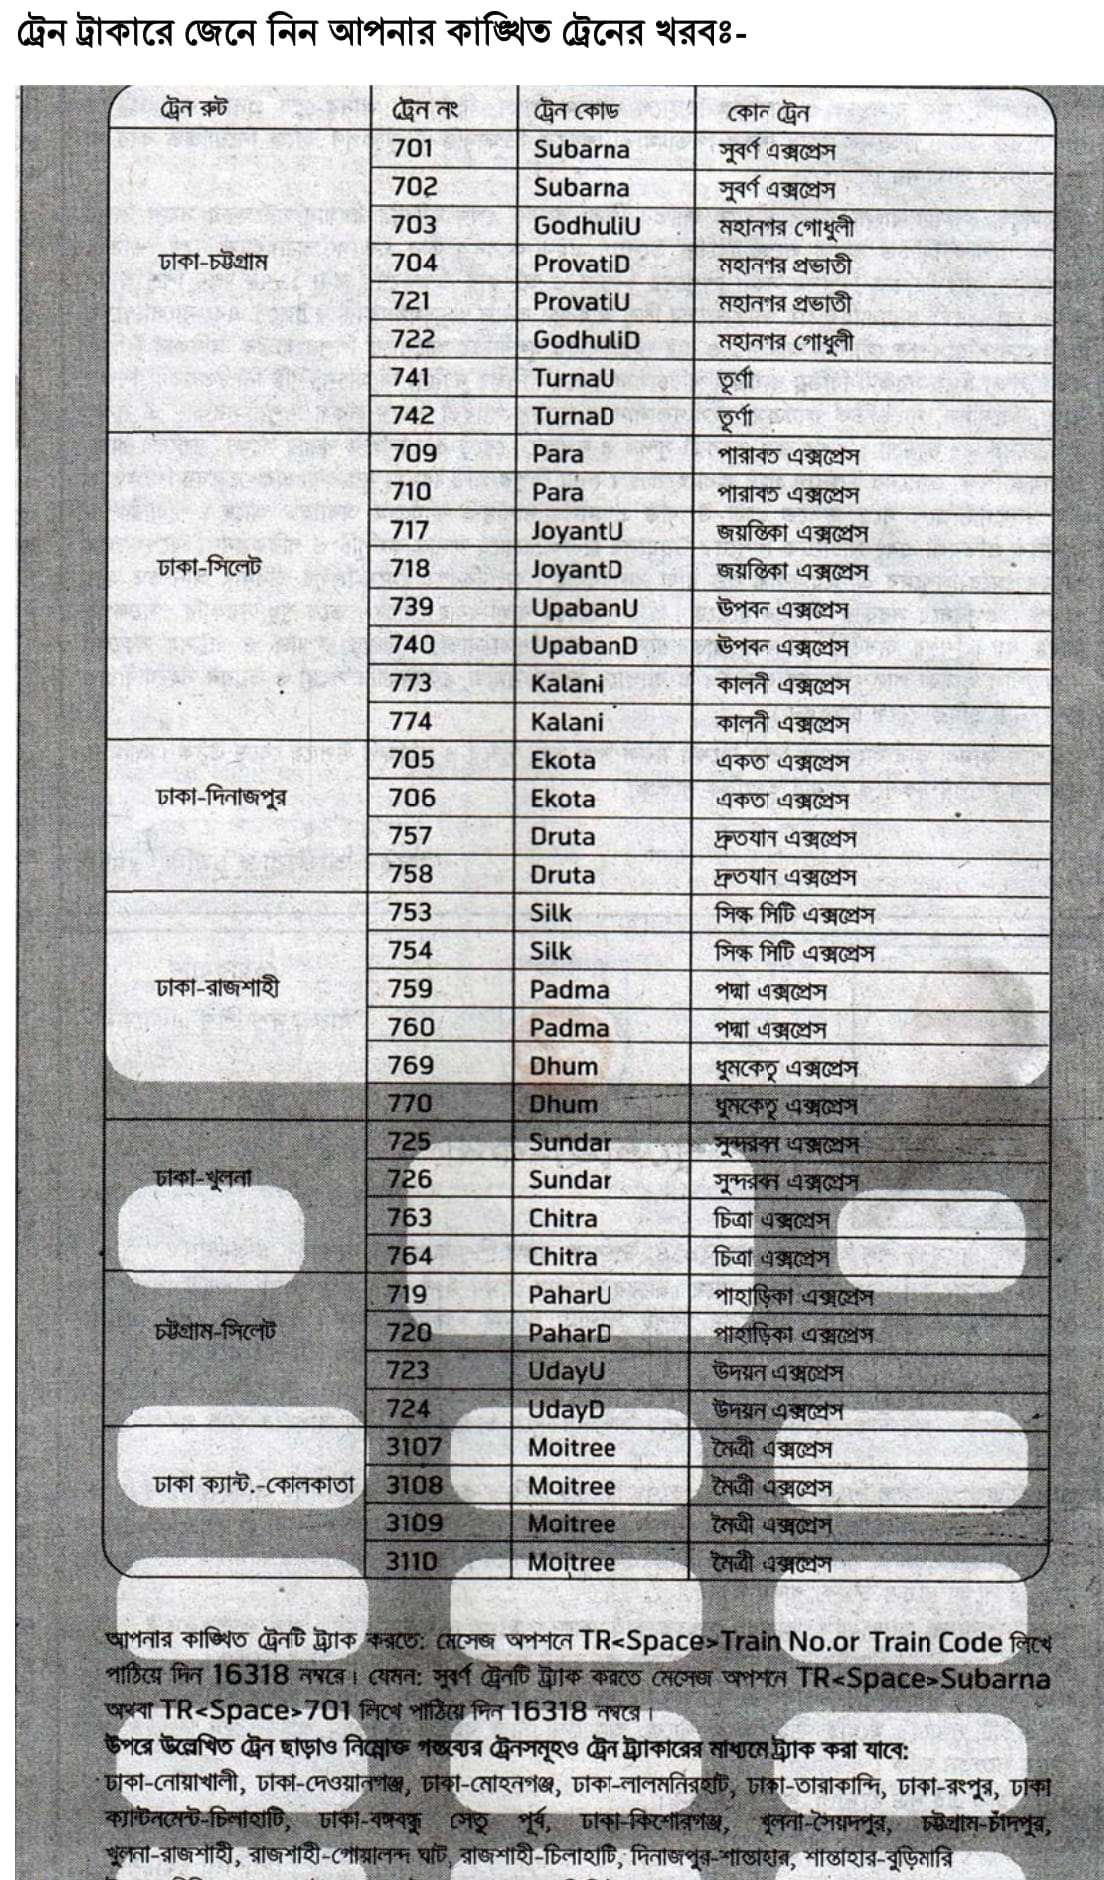 Train Code and Train Number